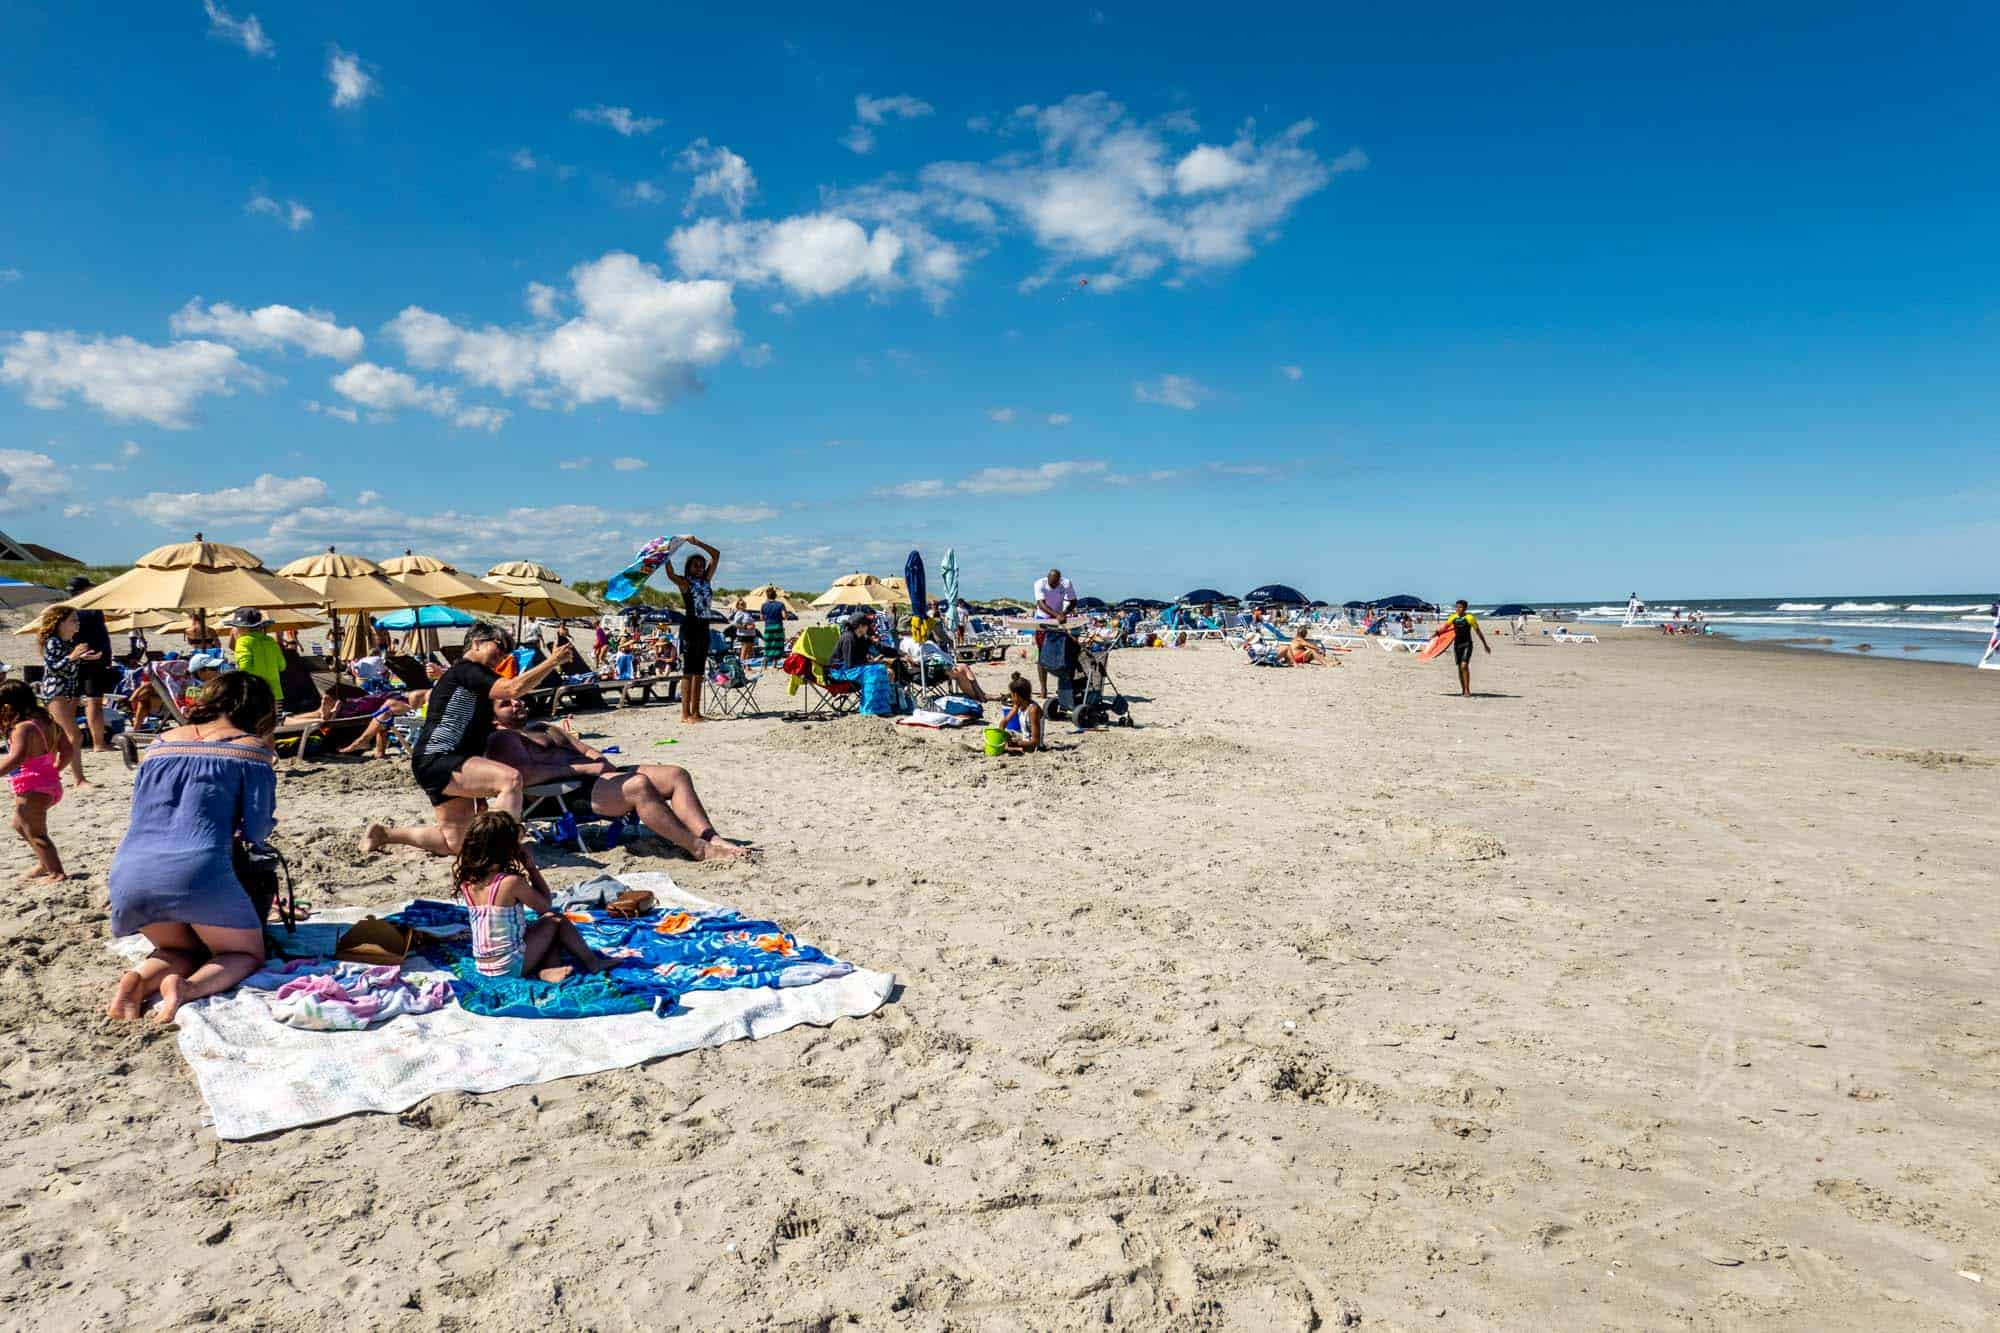 People sitting on towels and in chairs at the beach in Avalon NJ